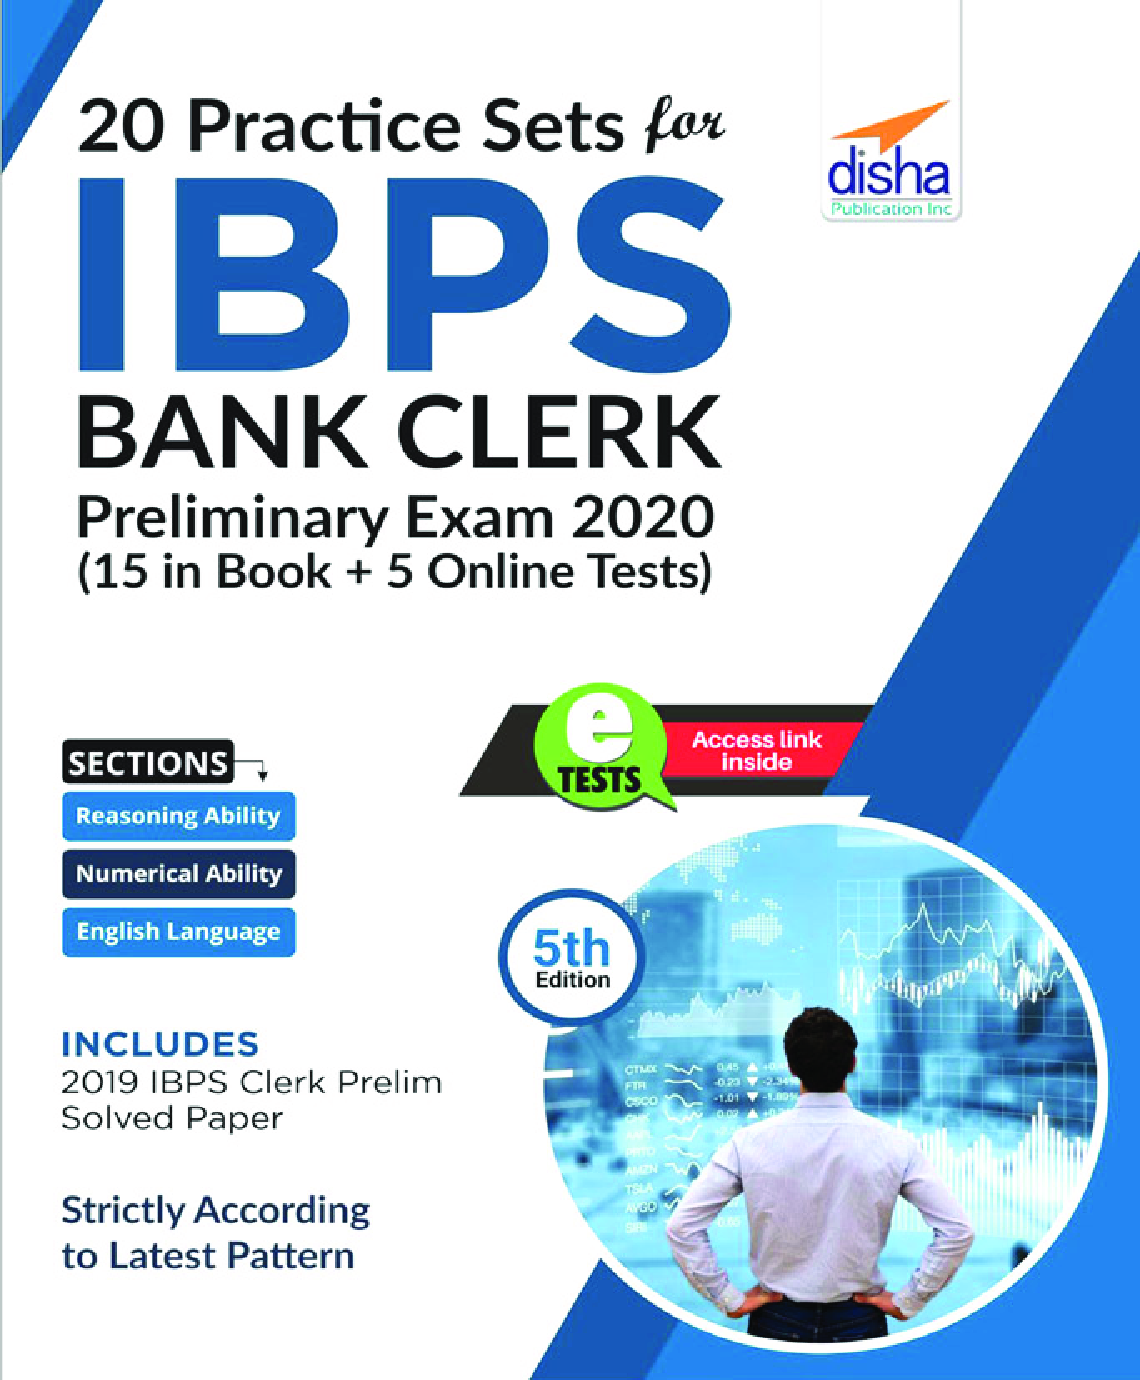 20 Practice Sets For IBPS Bank Clerk Preliminary Exam 2020 - 15 In Book + 5 Online Tests 5th Edition - Page 1